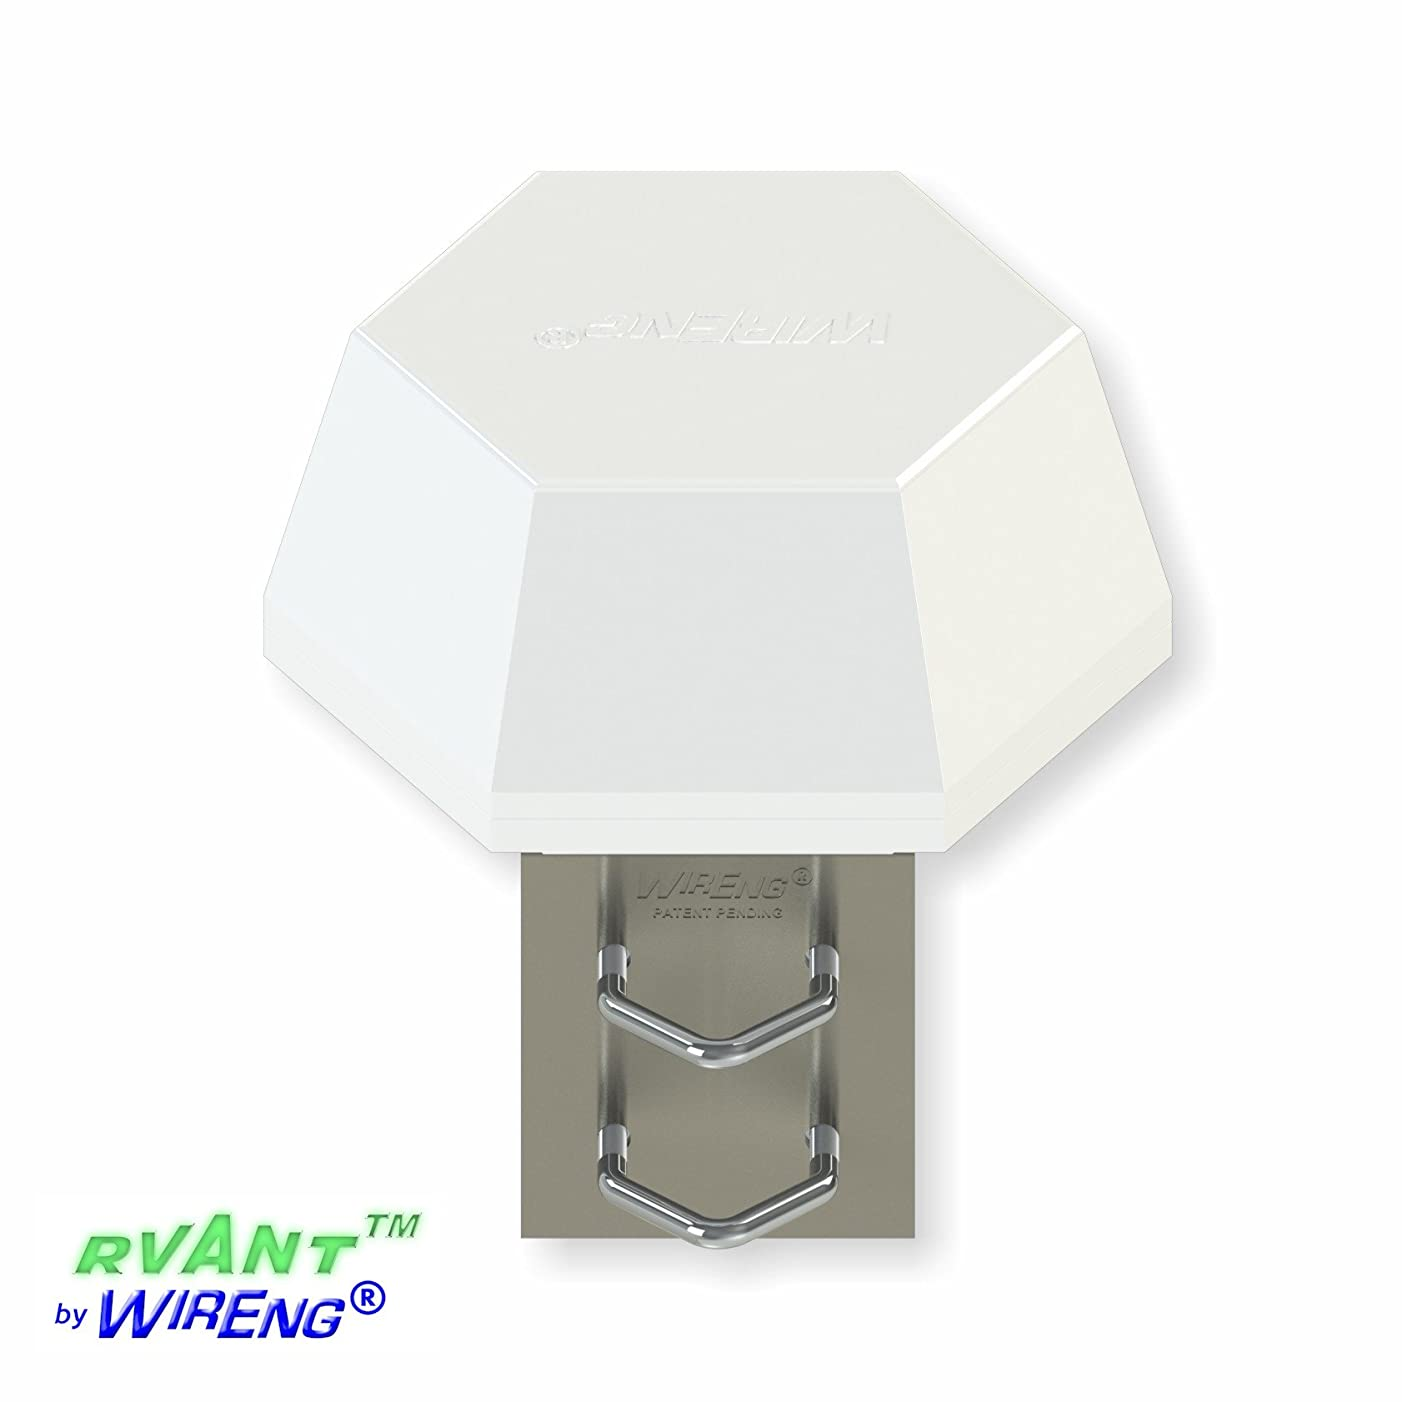 RVAnt-Boost? Antenna for Verizon U760 Modem RV/Truck/Railway Omni Industrial-Strength with DEP? Data-Enhancing Polarization? Made with Stainless Steel and Fiberglass